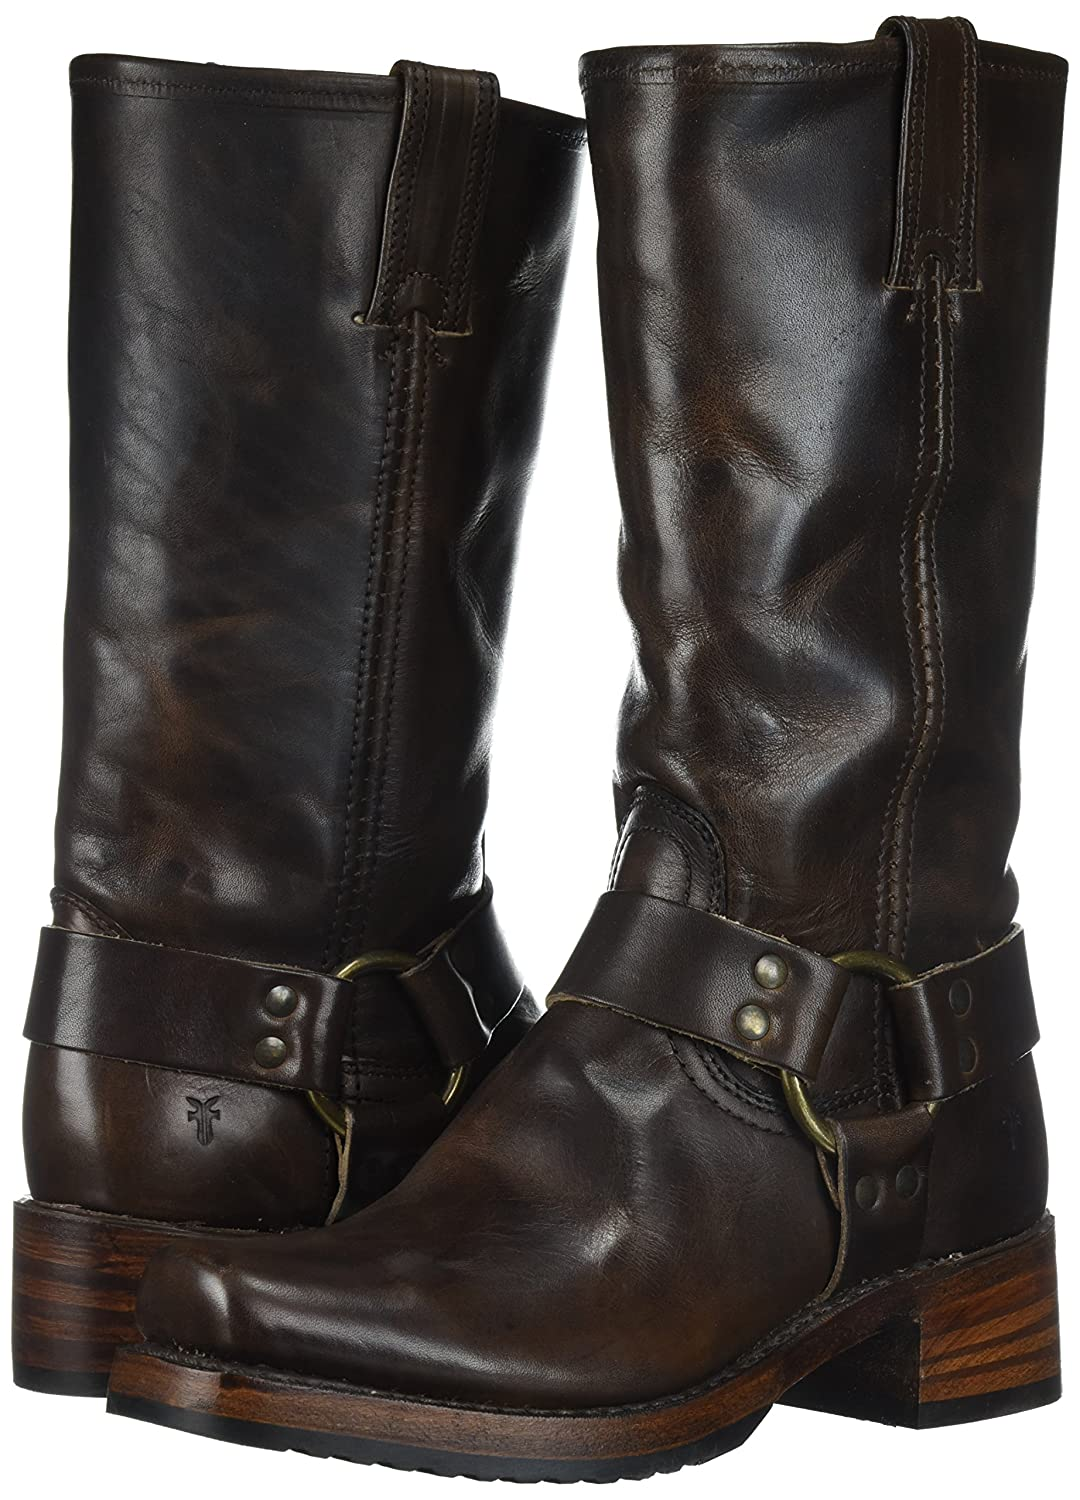 FRYE Women's Heirloom Tall B(M) Harness Boot B01N8128DZ 9.5 B(M) Tall US|Espresso 5eb0f5